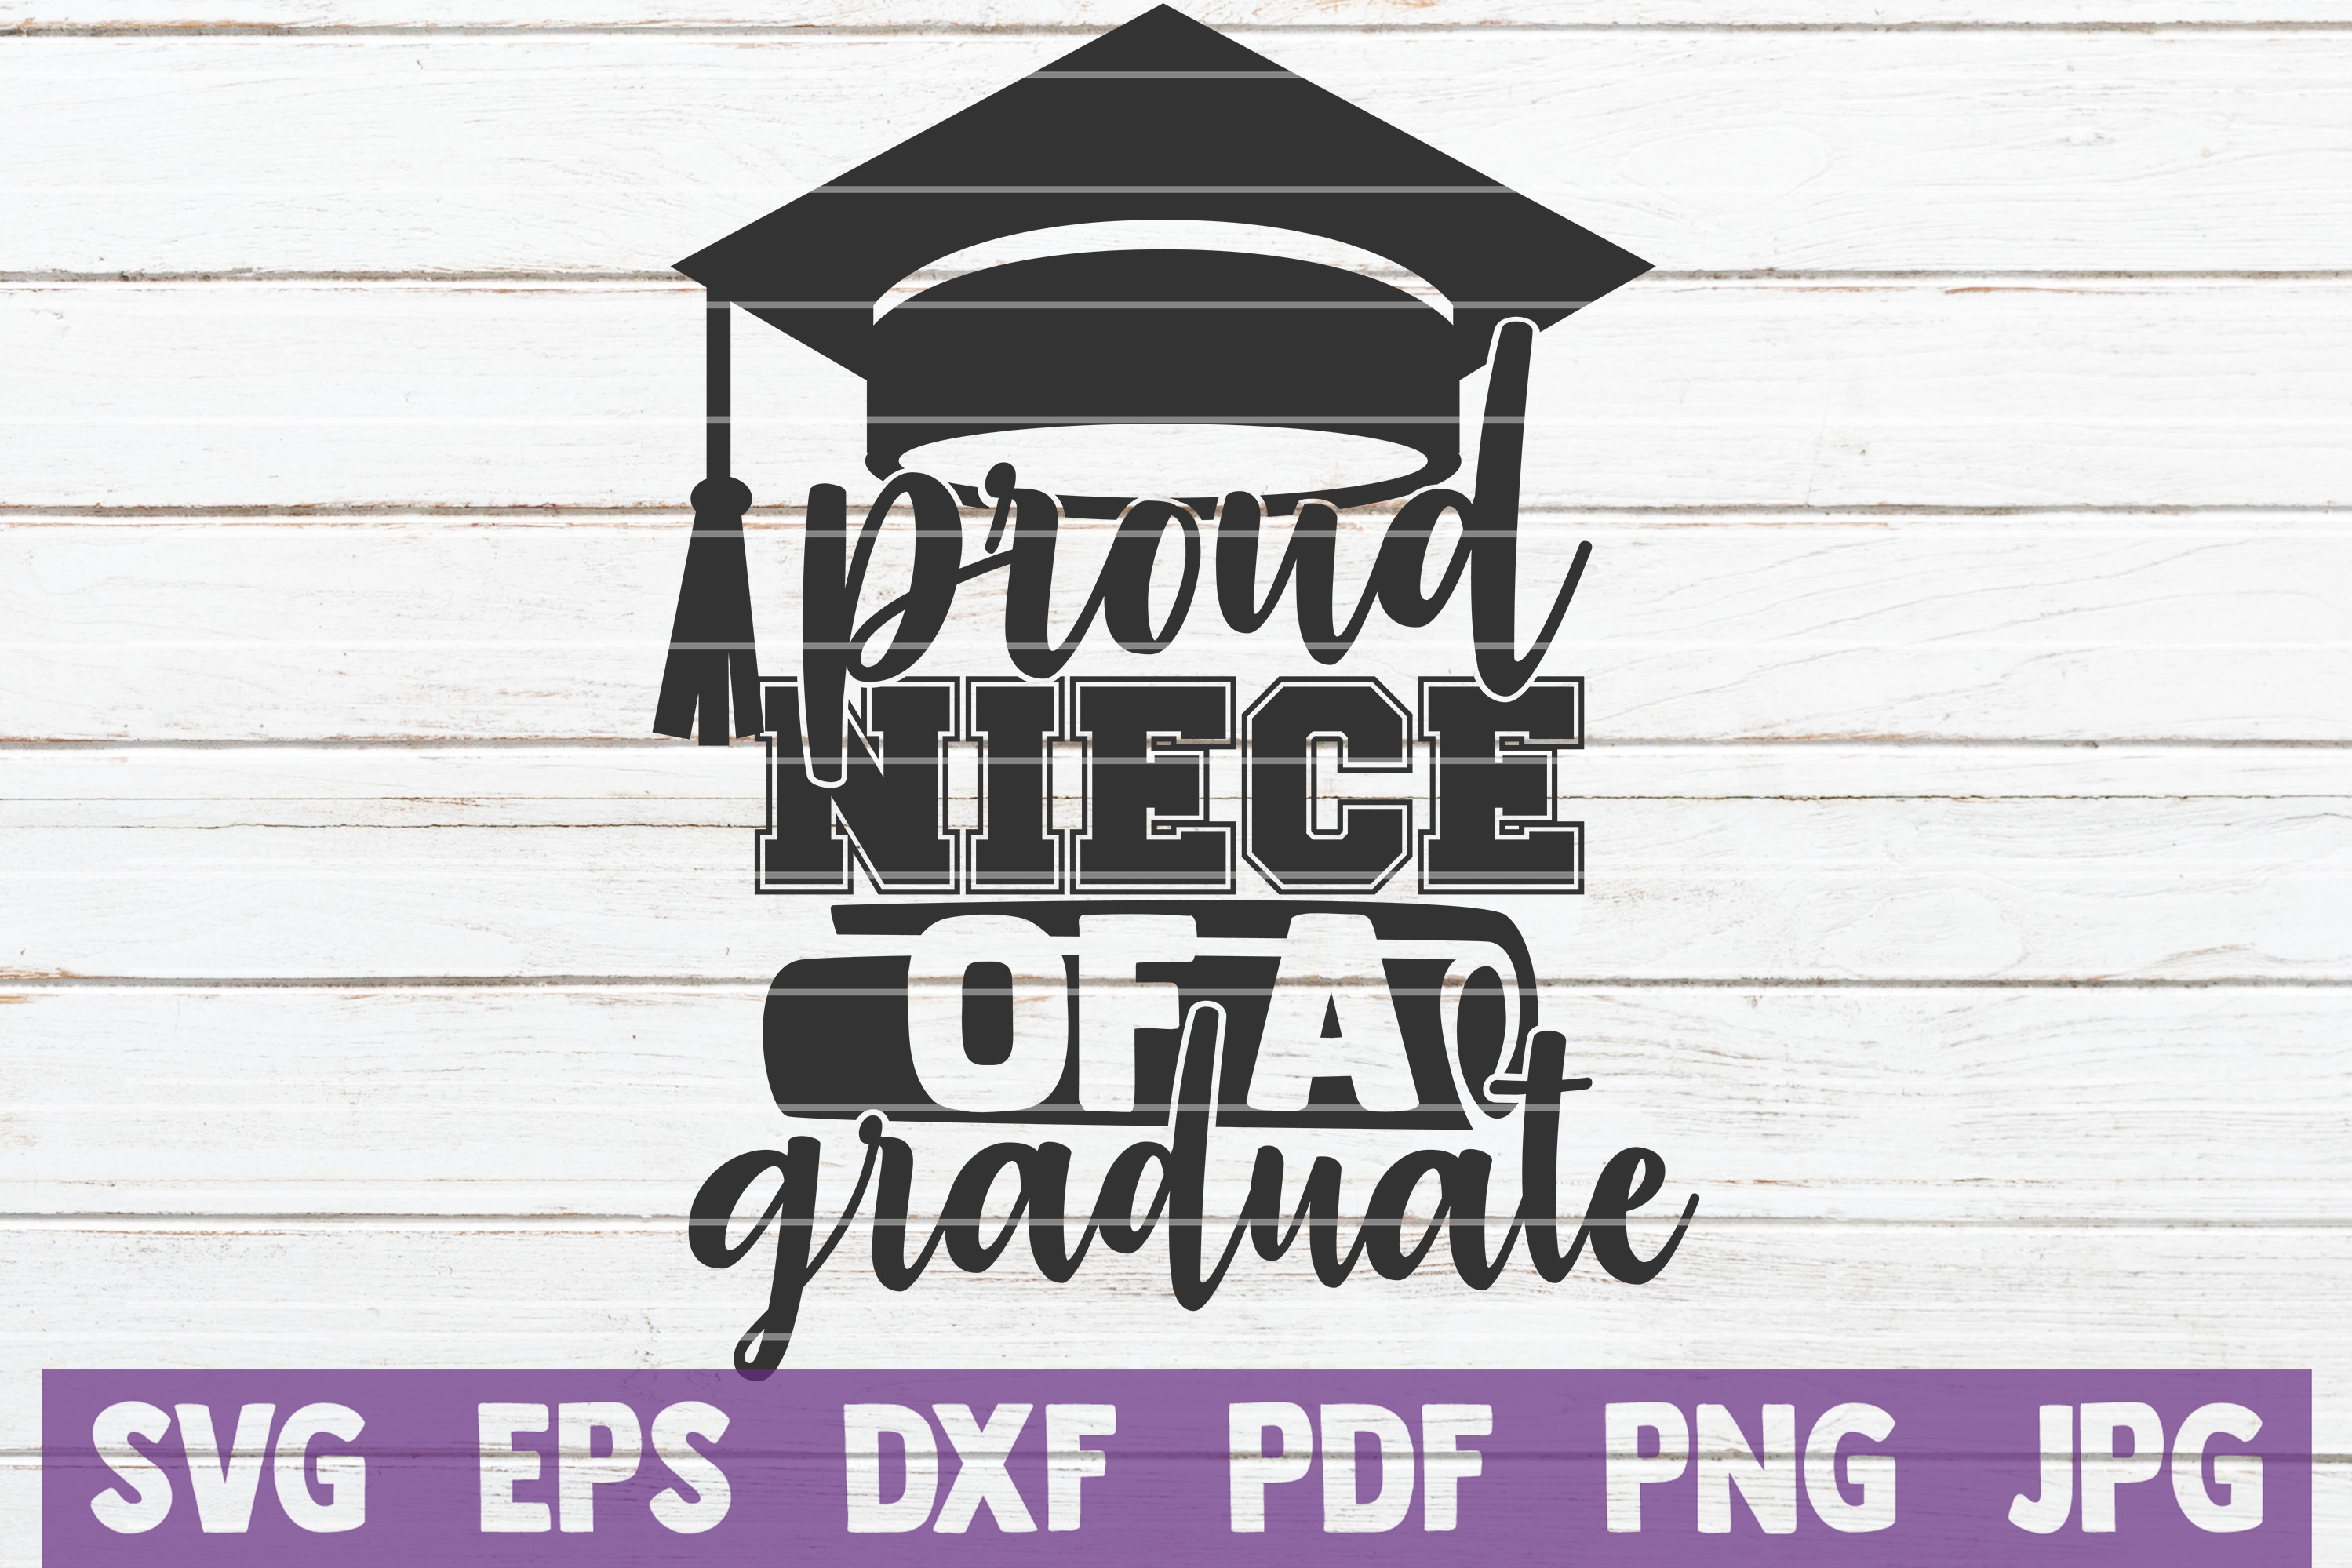 Download Free Proud Niece Of A Graduate Svg Cut File Graphic By for Cricut Explore, Silhouette and other cutting machines.